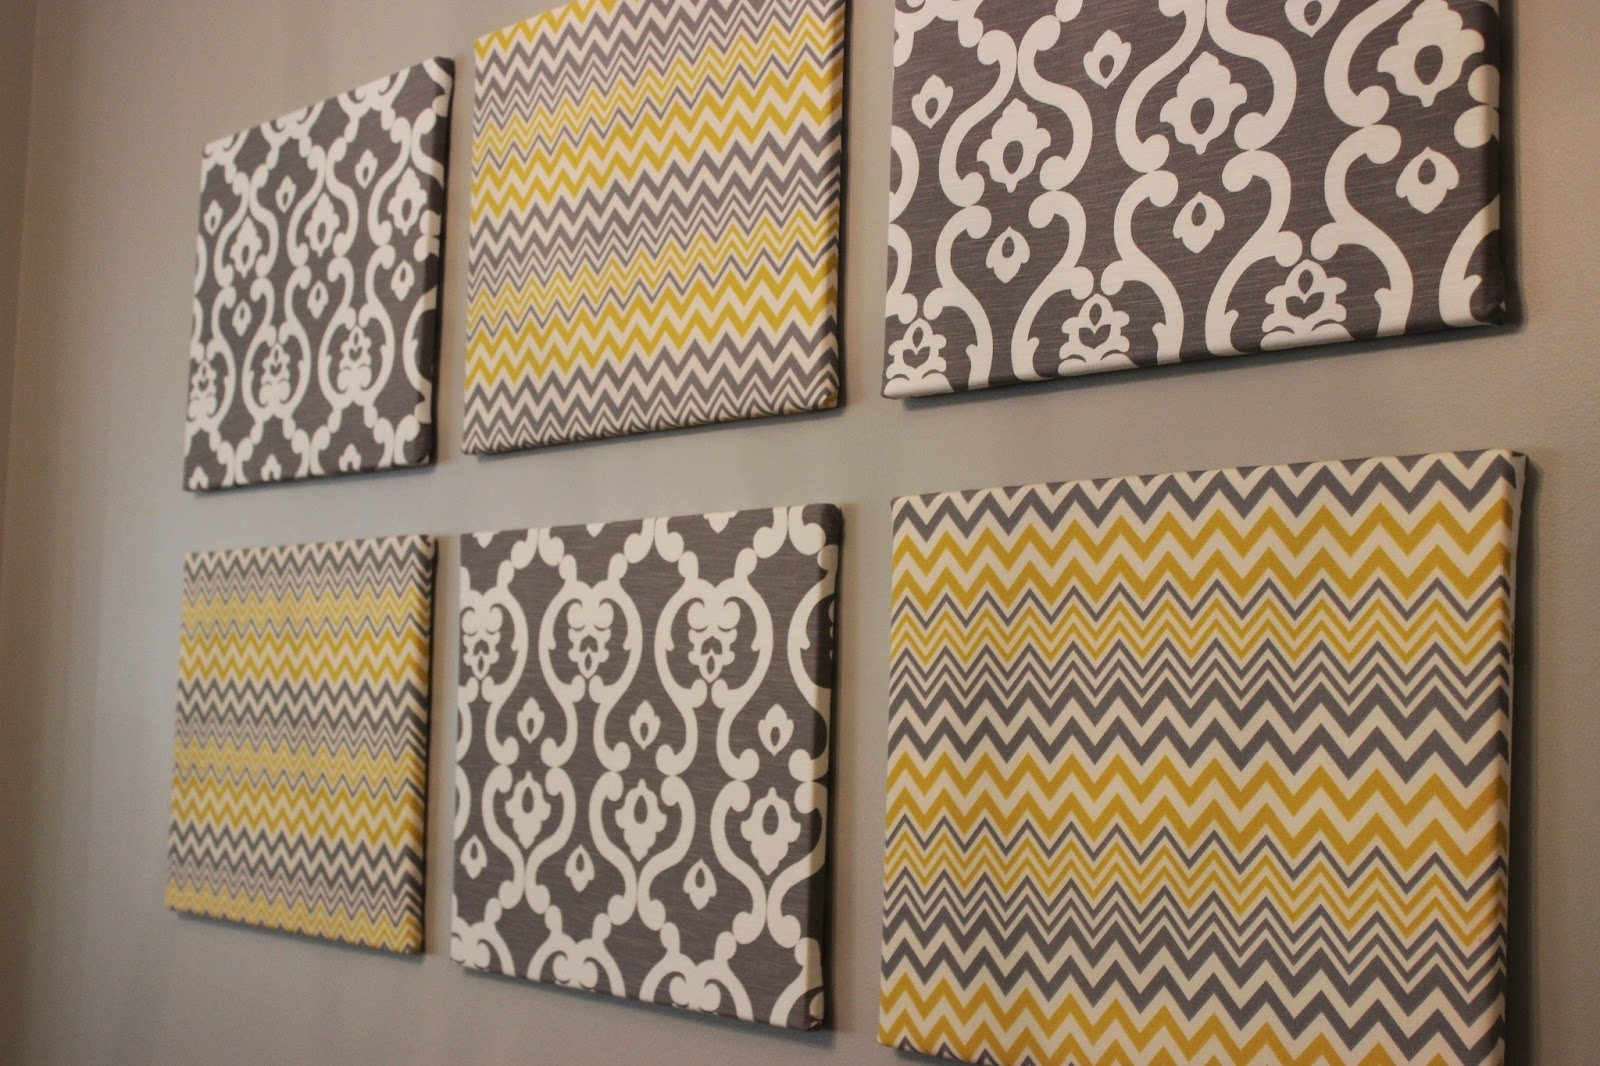 Sleek Diy Wall Conquers Painted Canvas A Pop Plus Home Decorating For 2018 Simple Fabric Wall Art (View 9 of 15)